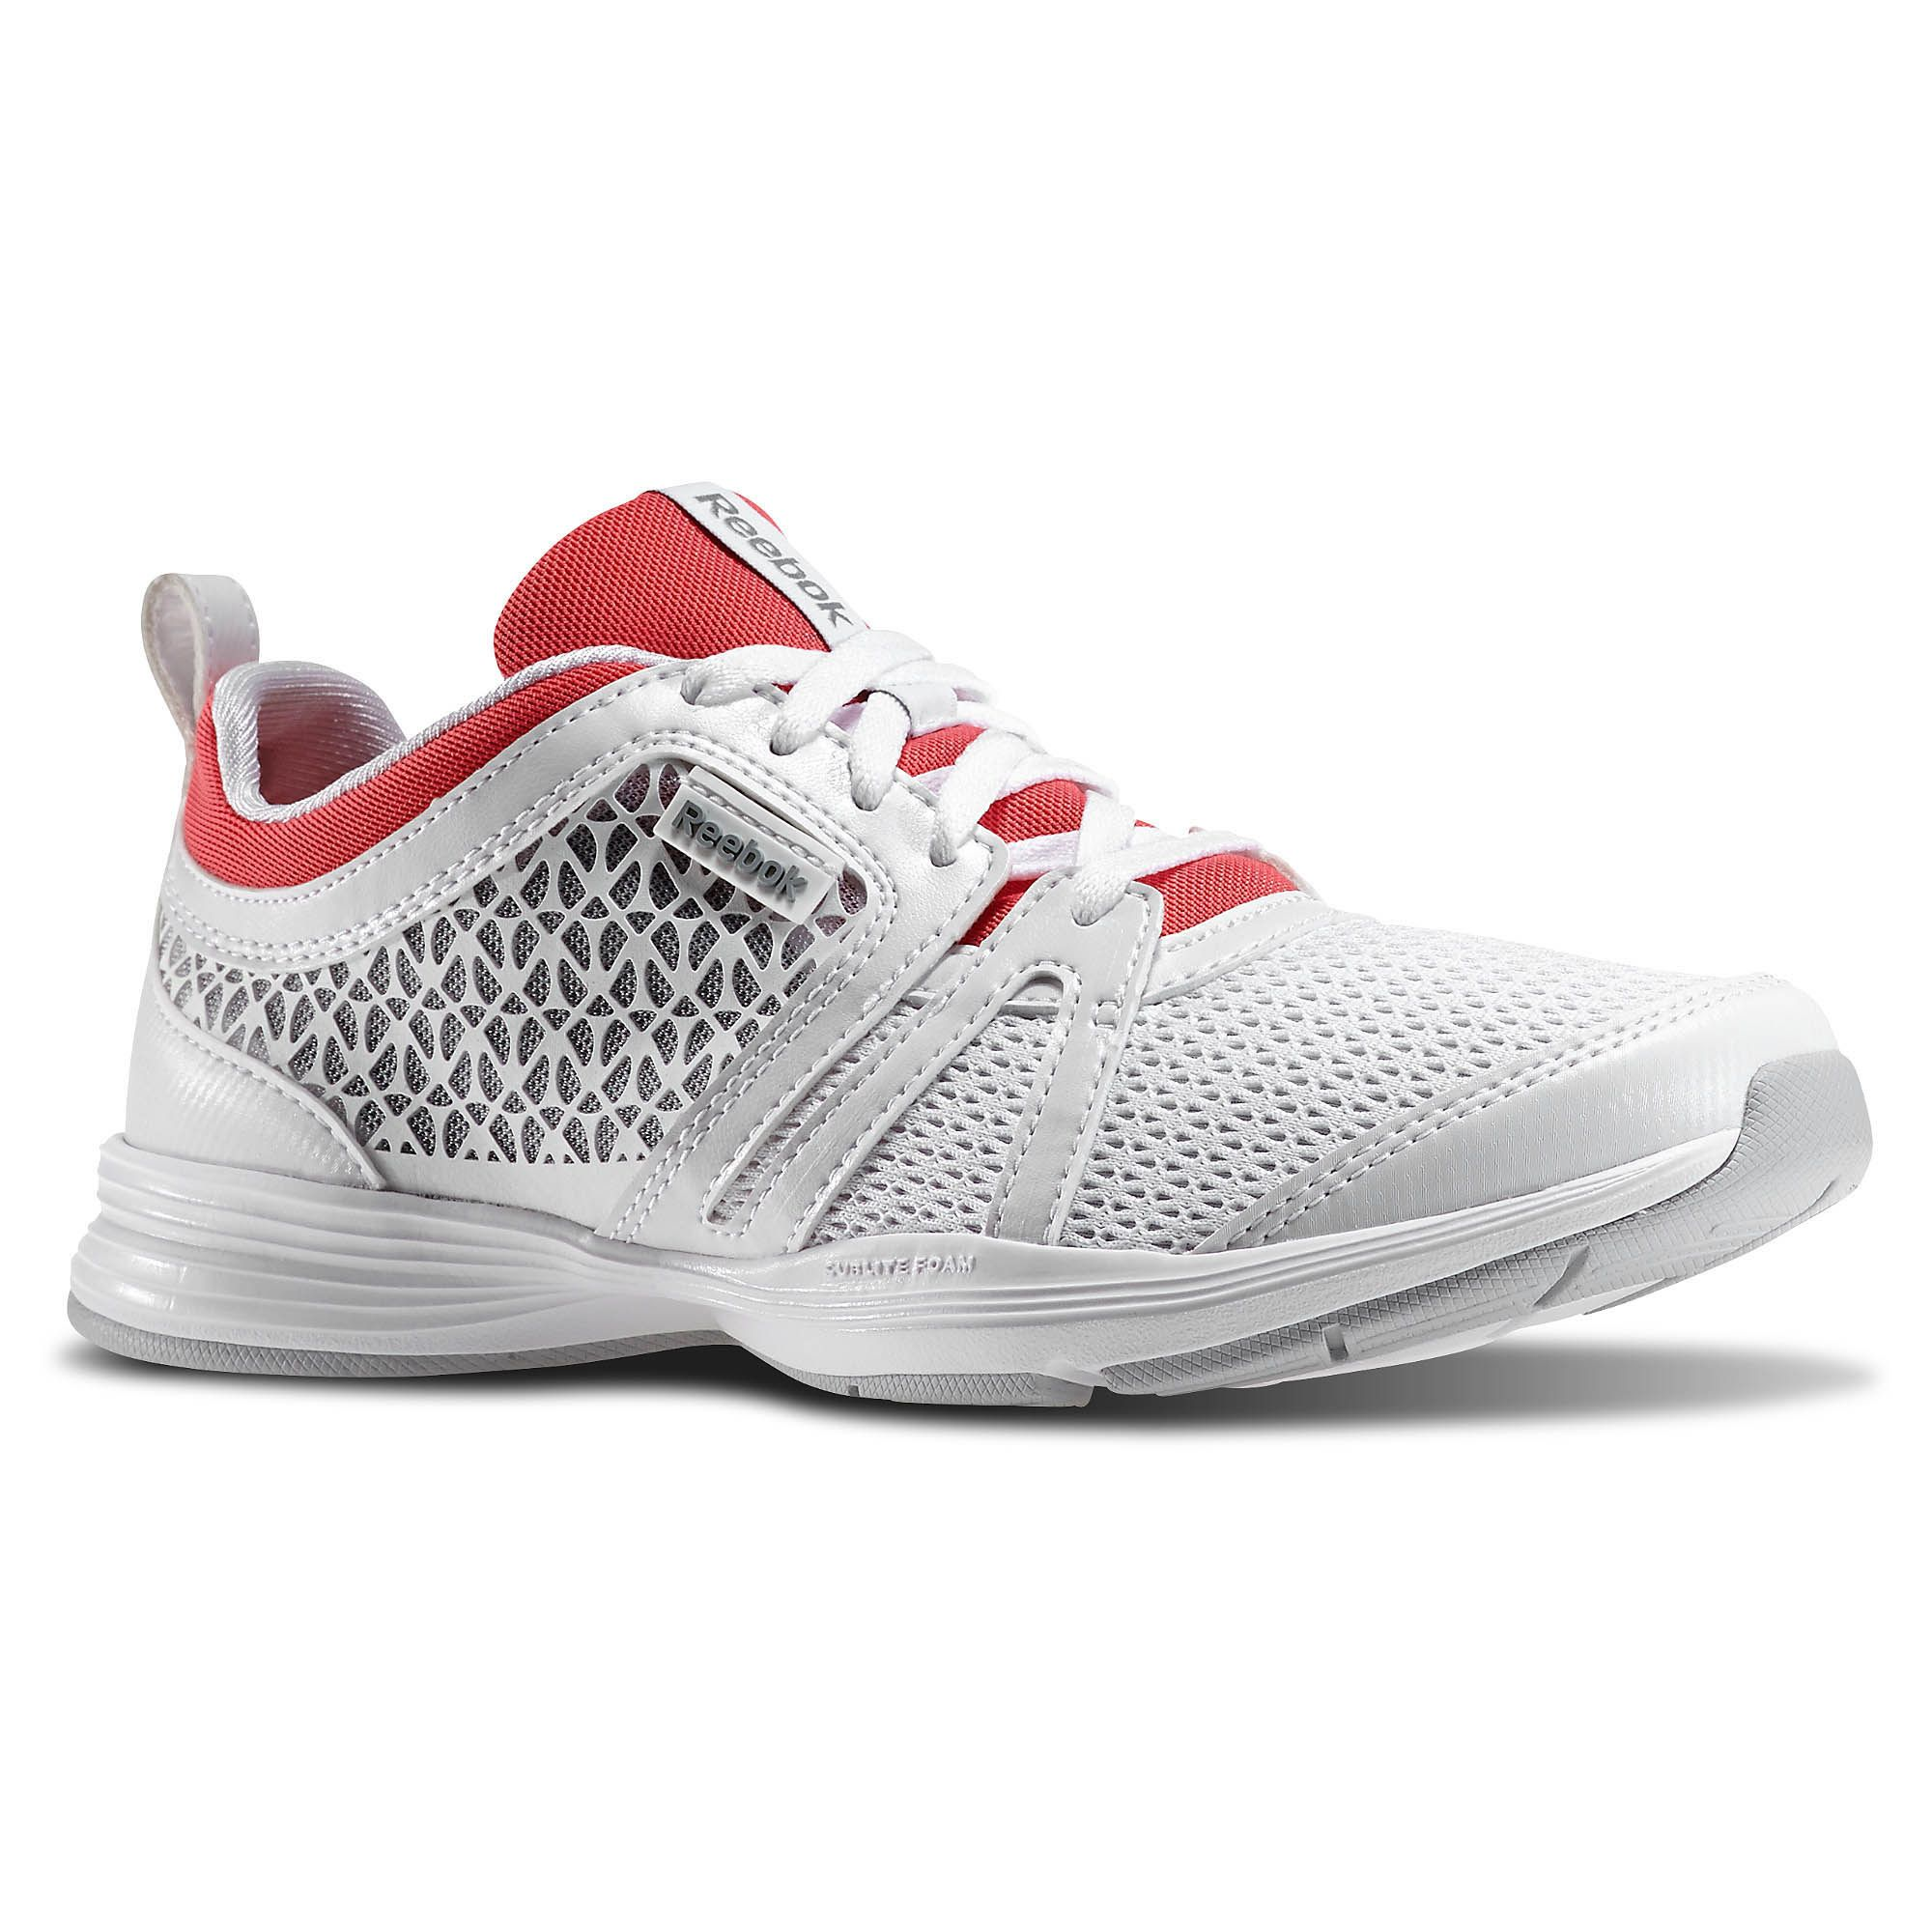 Reebok-running-shoes-and-sportsshoes-for-women (4)